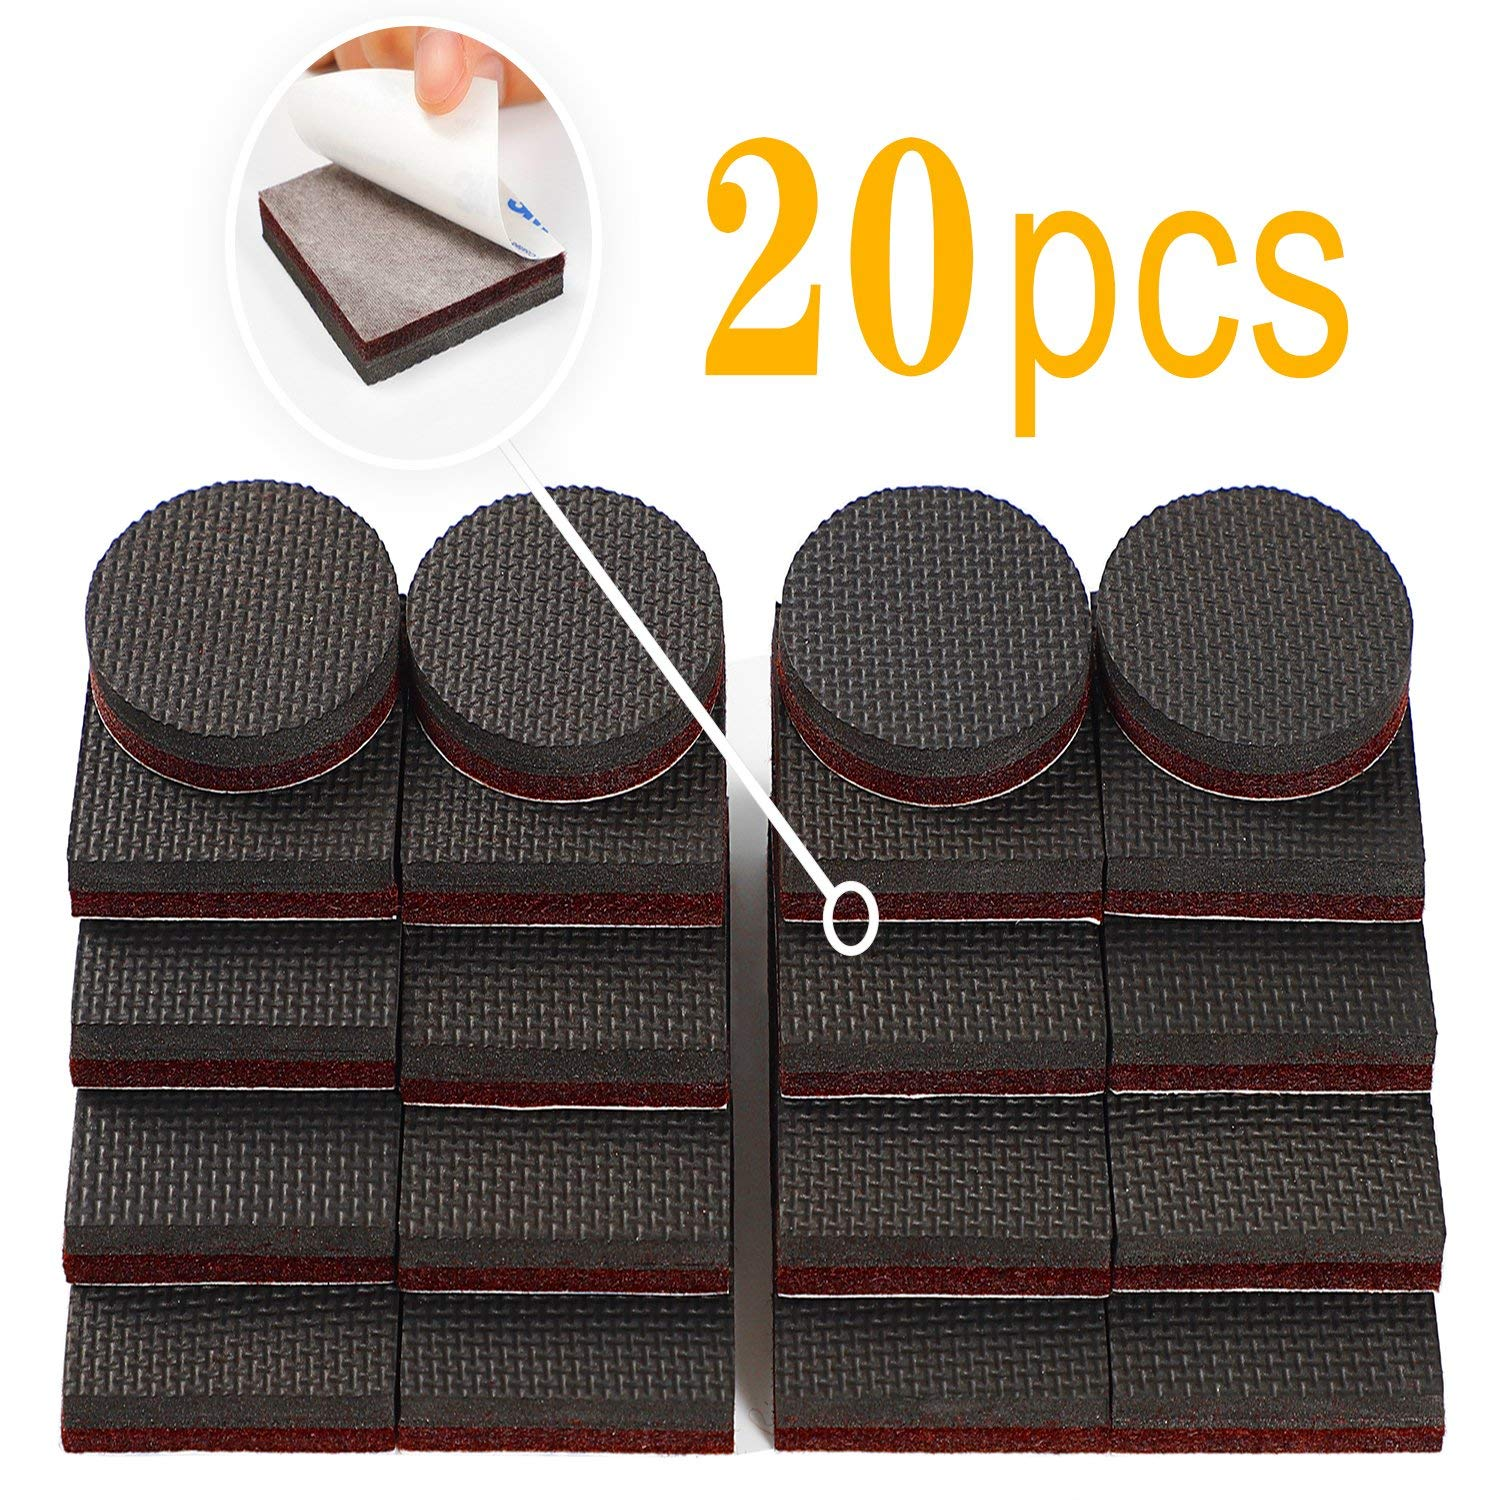 Zj 2 Non Slip Furniture Pads Thick Grippers Feet Floor Protectors